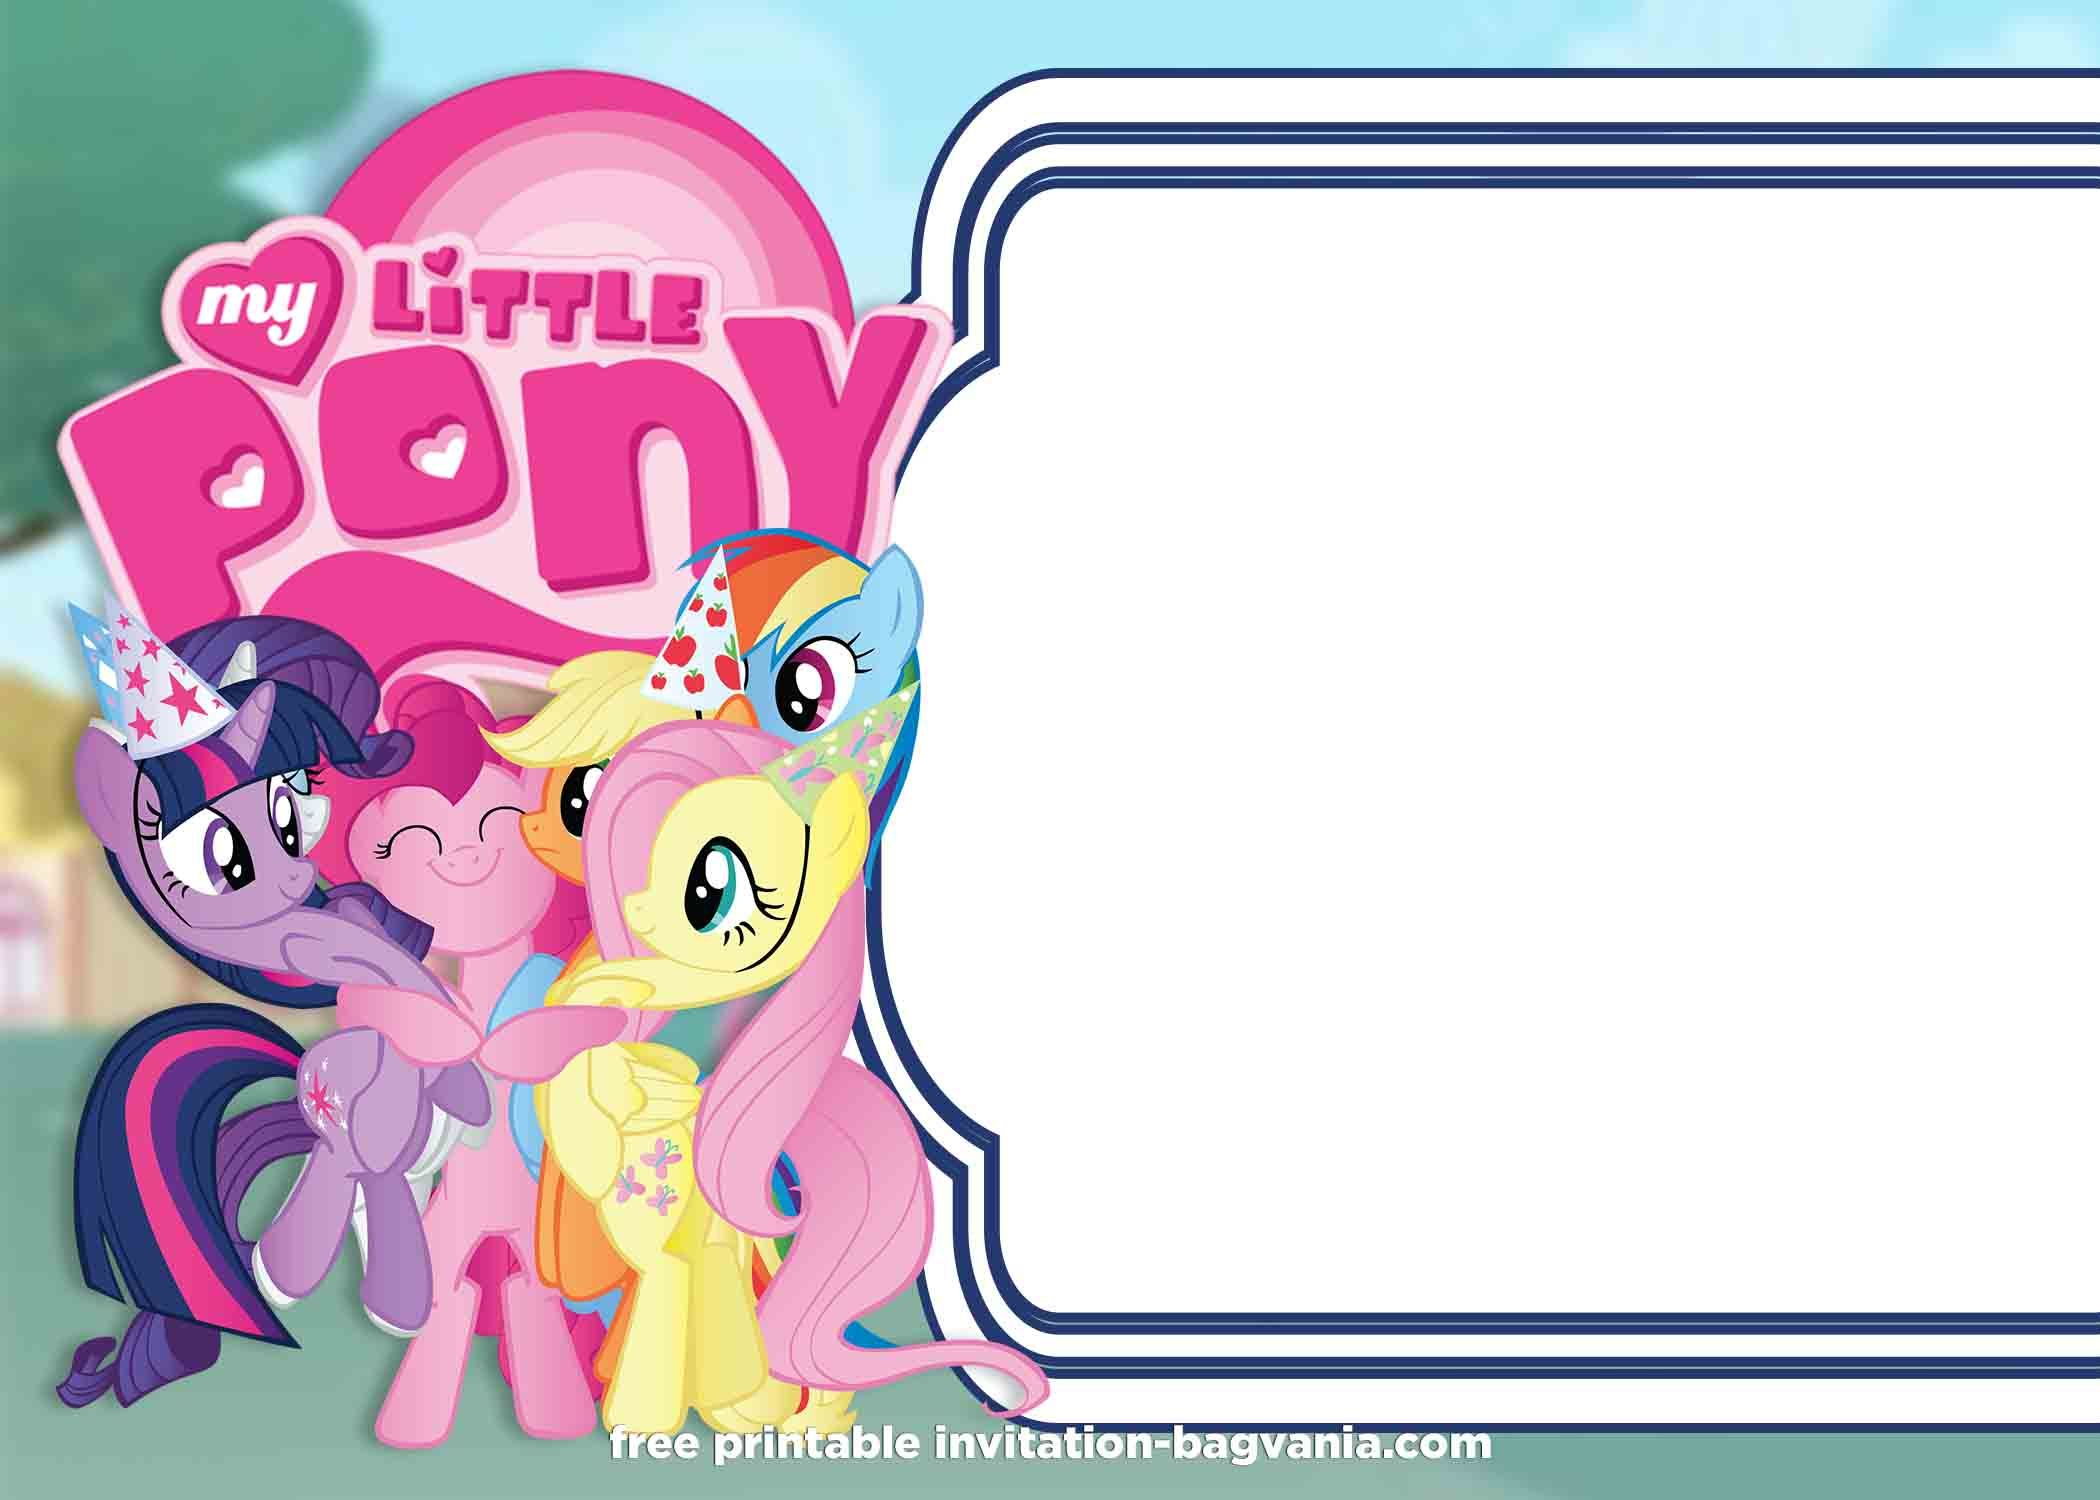 Free Printable My Little Pony Summer Edition Invitations My Little Pony Birthday My Little Pony Little Pony